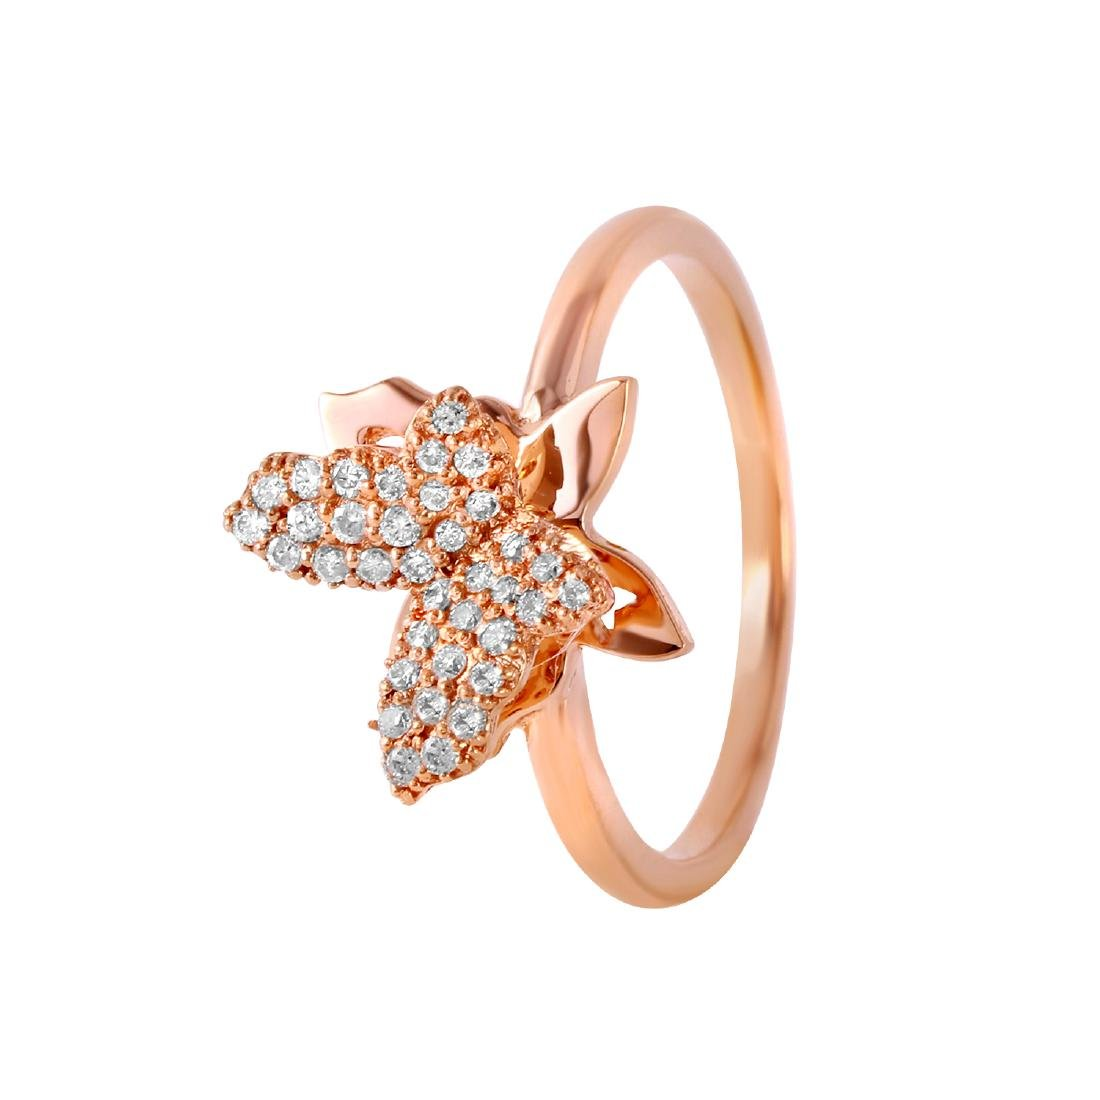 0.21 Carat Natural Diamond 18K Solid Rose Gold Ring